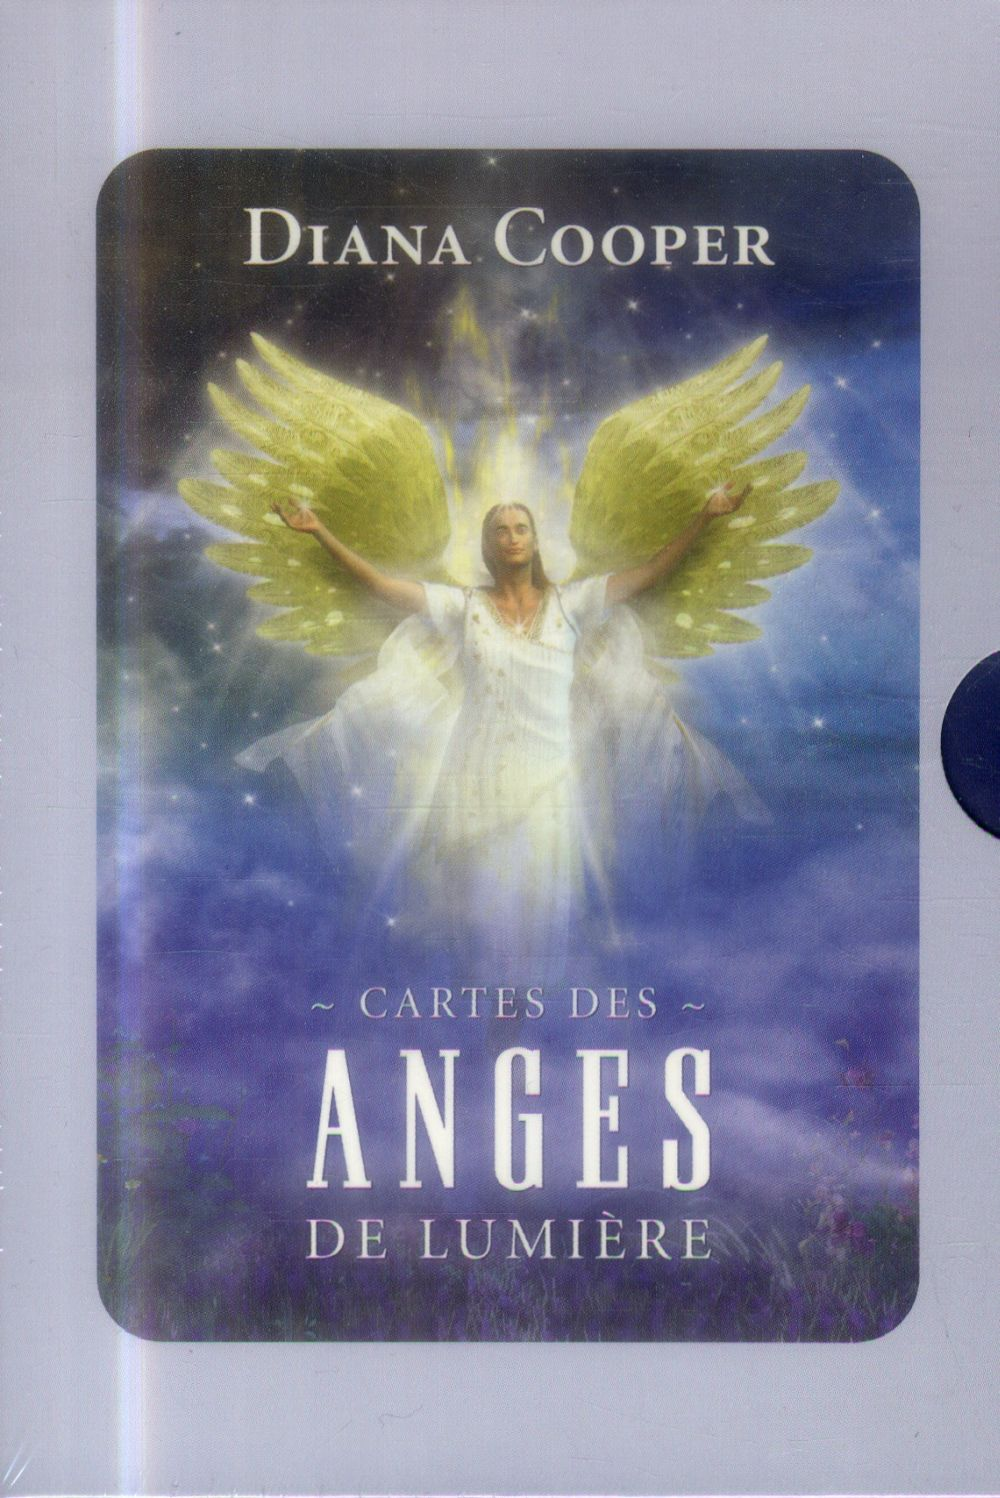 COFFRET CARTES DES ANGES DE LUMIERE